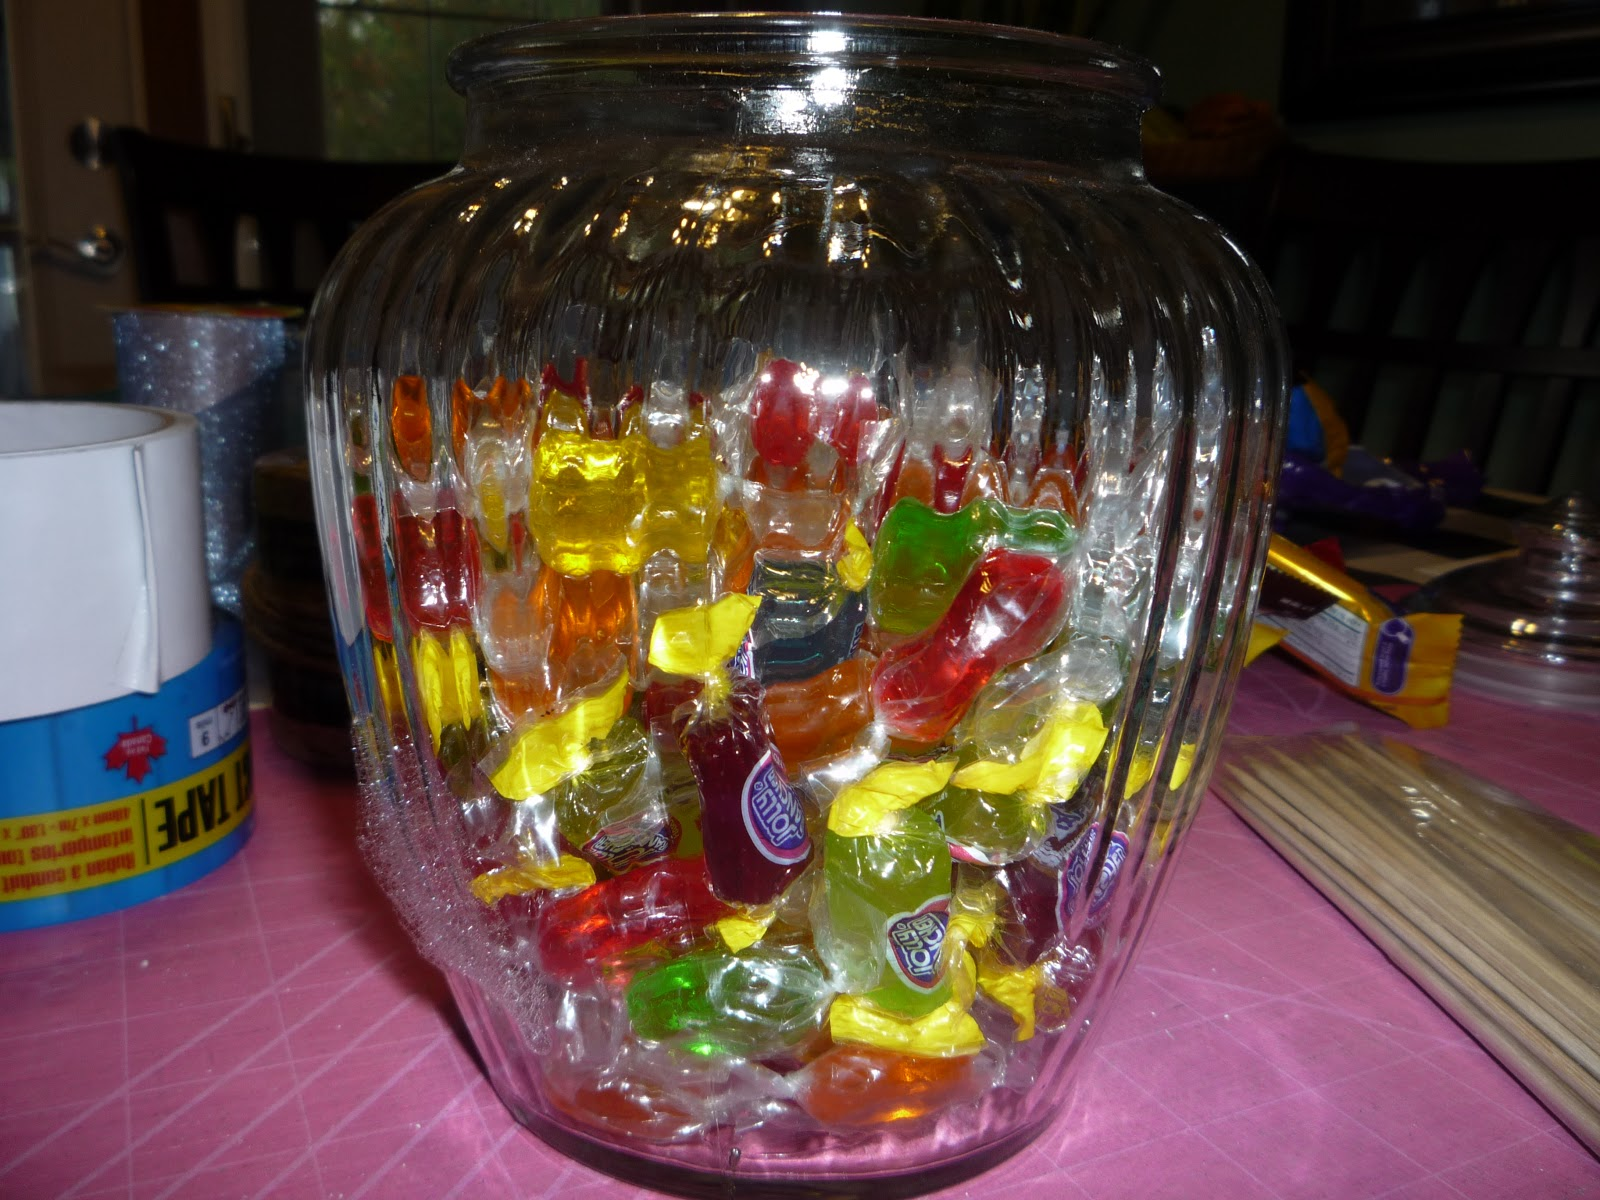 filled my cookie jar/vase with hard candy